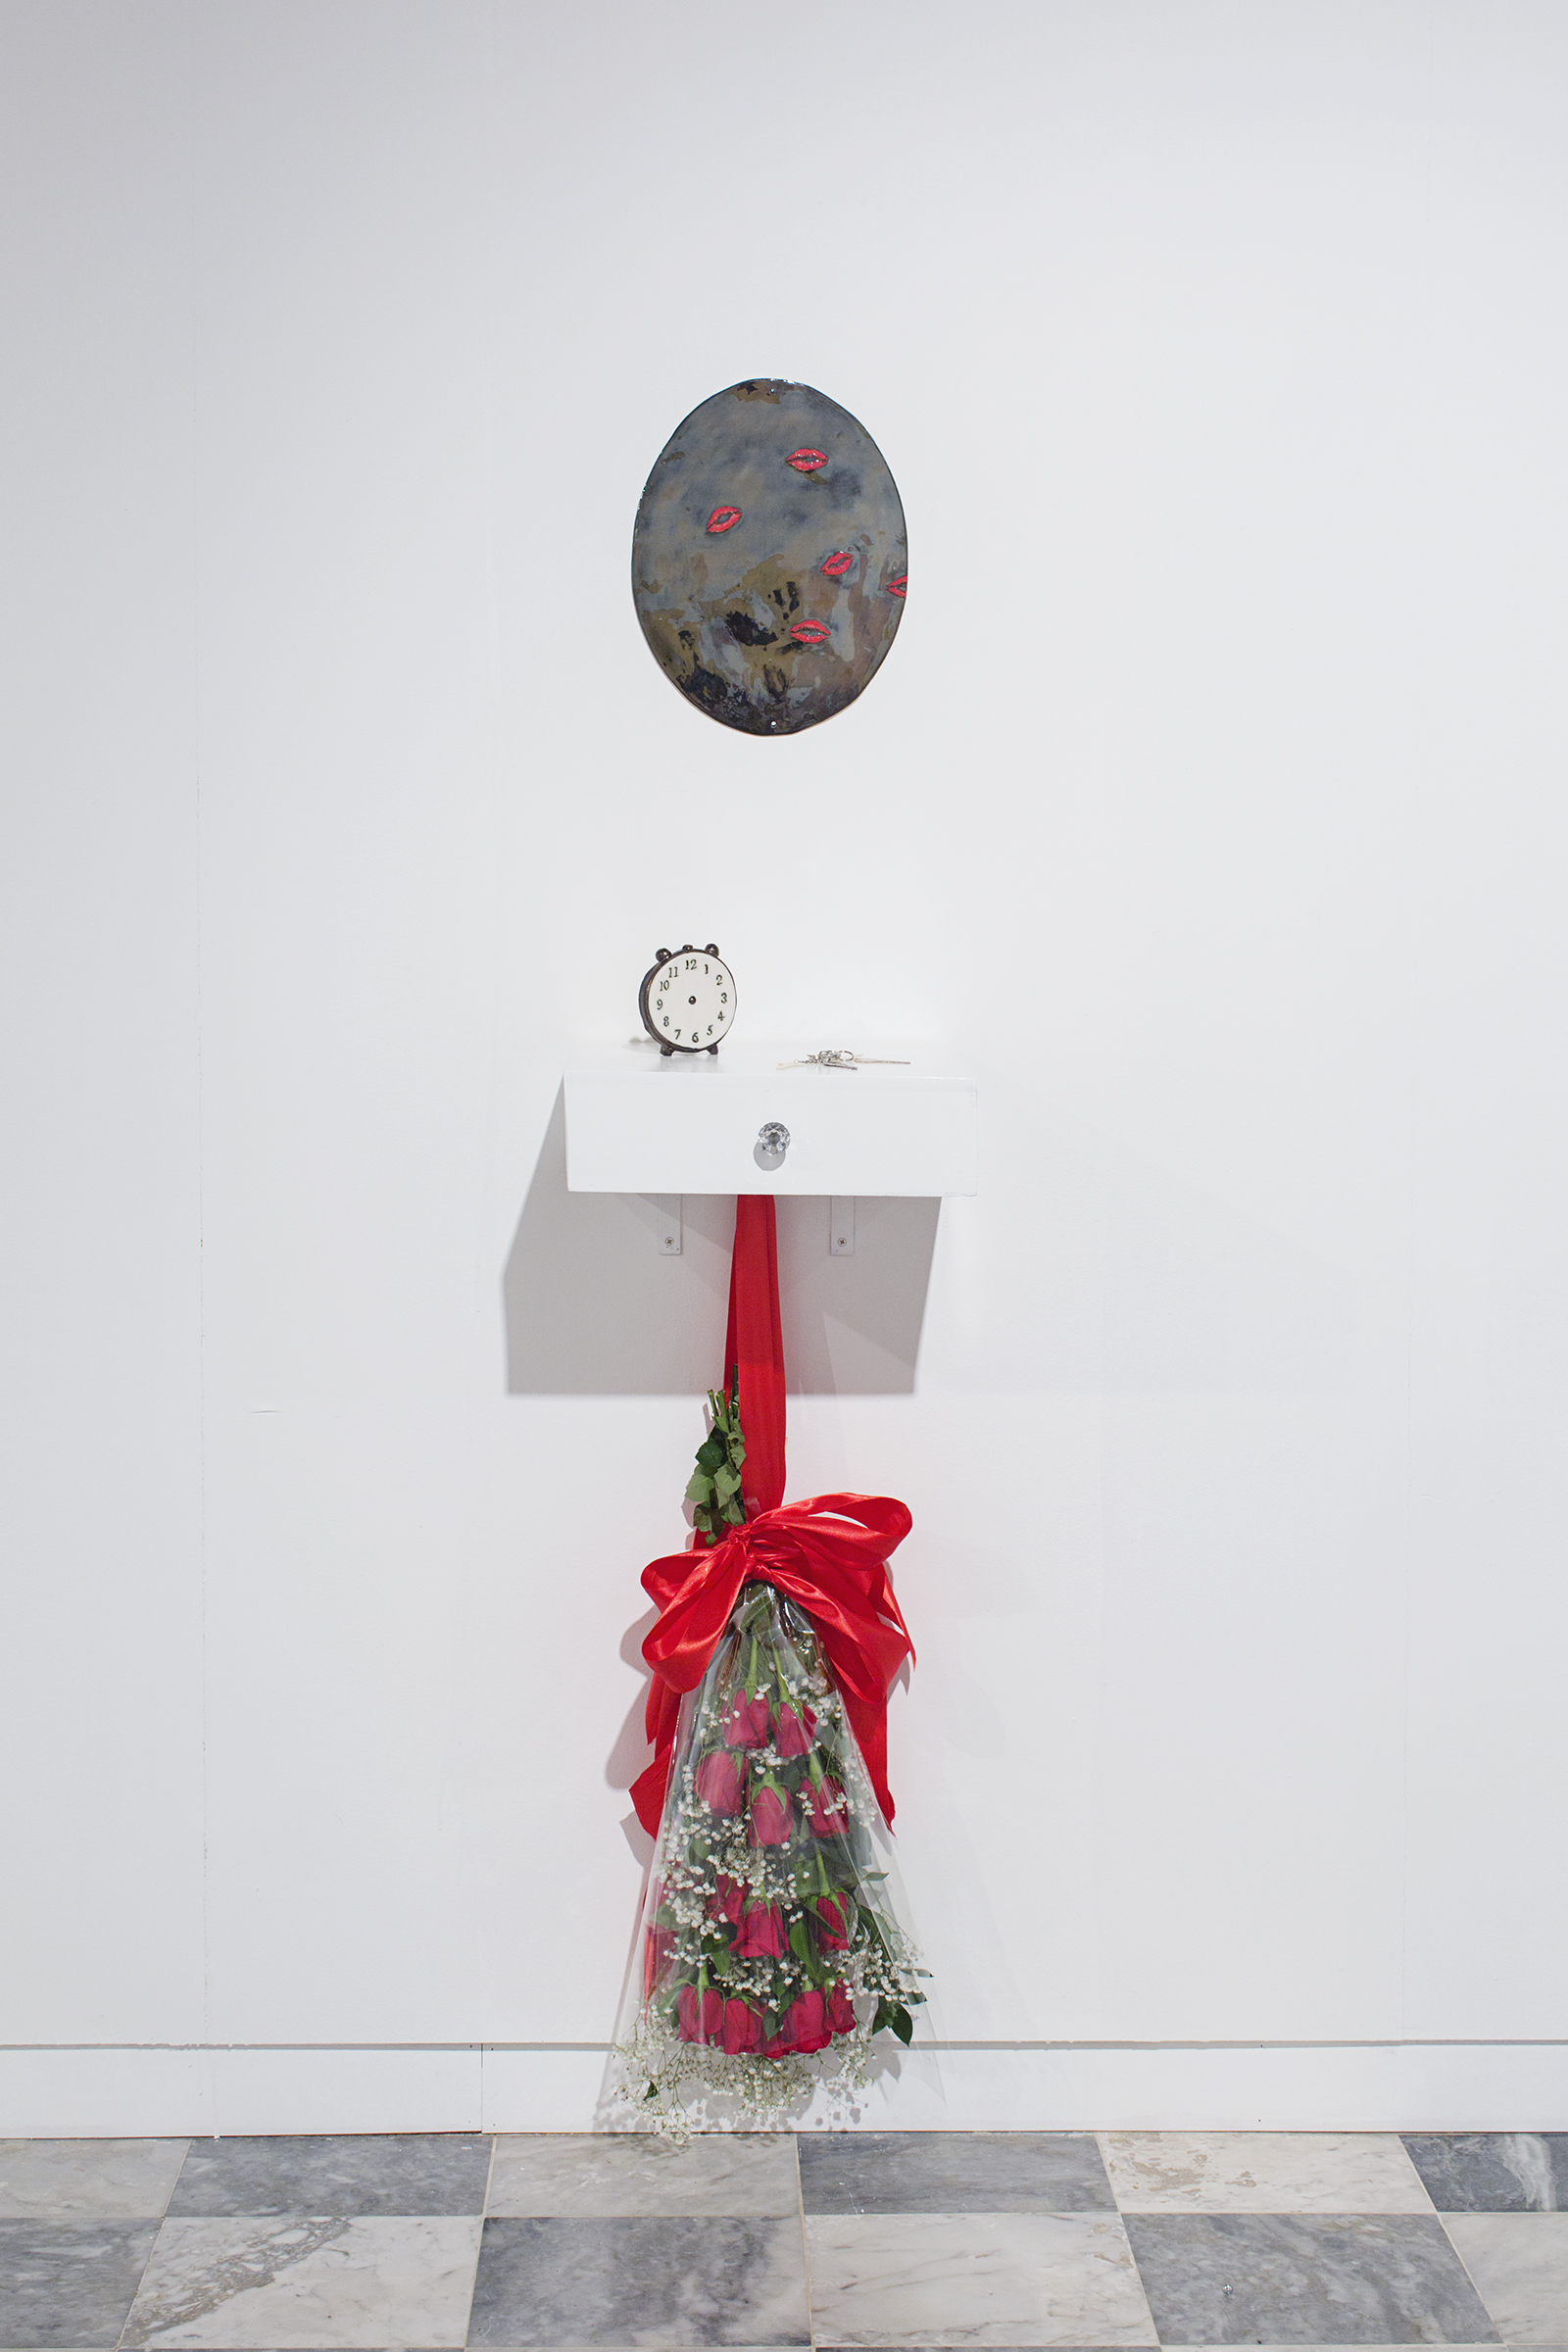 "Denise Quiñones, Miss Universe 2001, 2018   Porcelain mirror, porcelain clock without hands, mother of pearl, red abalone, black mother of pearl carved keys on vanity, red roses, silk, cellophane, baby's breath, hardware Porcelain mirror 14 x 8"" (35.6 x 20.3 cm), vanity shelf 12 x 15 x 4.5"" (30.5 x 38 x 11.4 cm)  Overall dimensions variable"